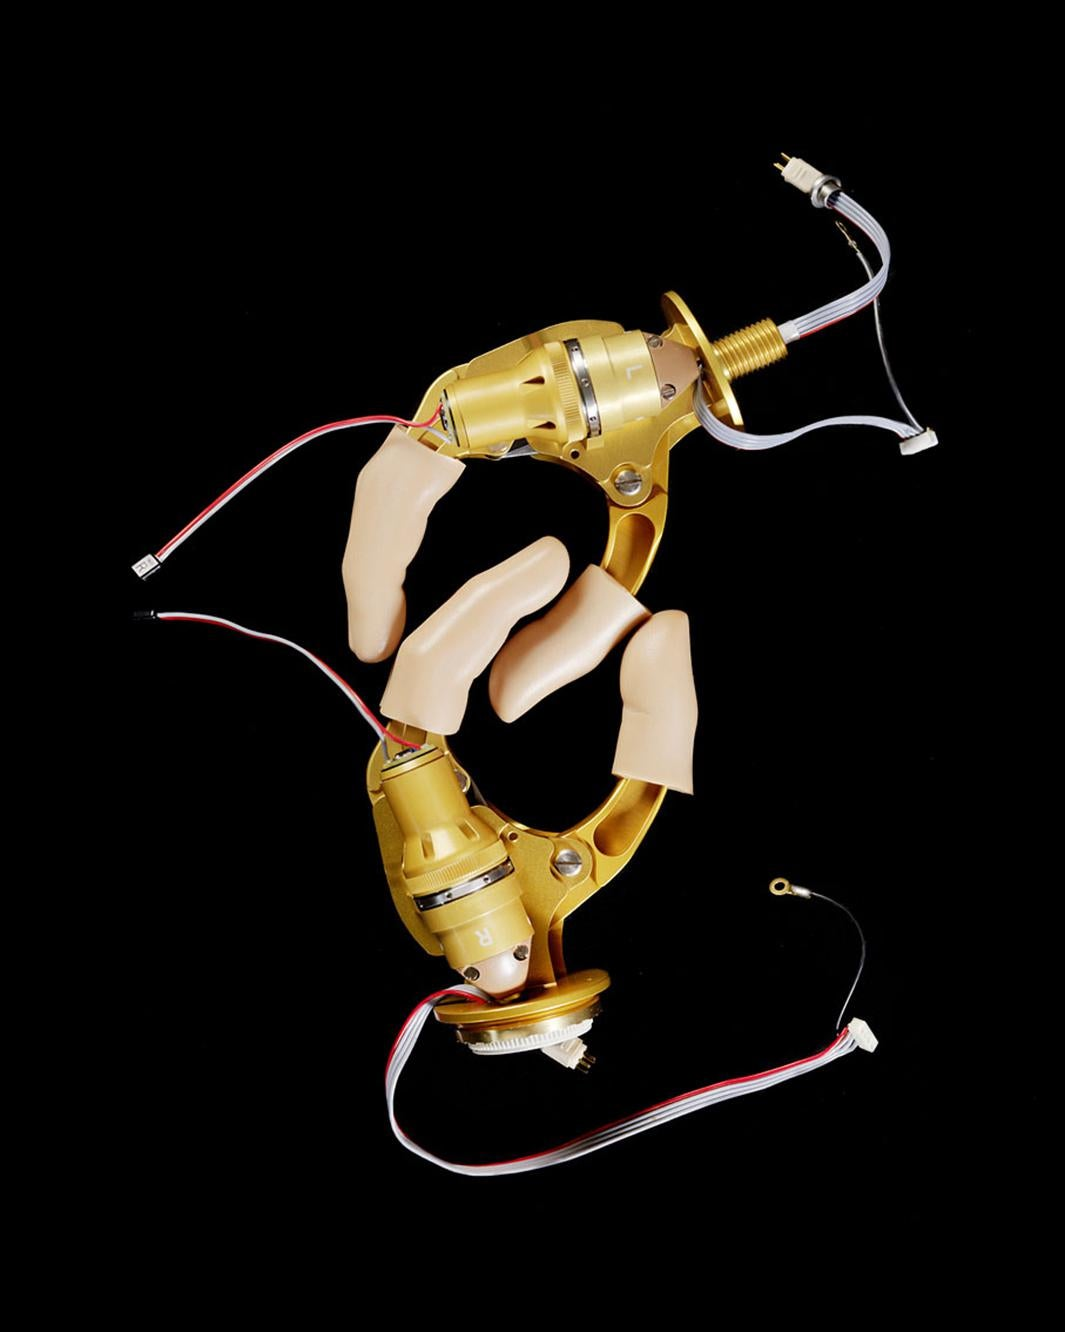 Hand Prothesis, 2012.